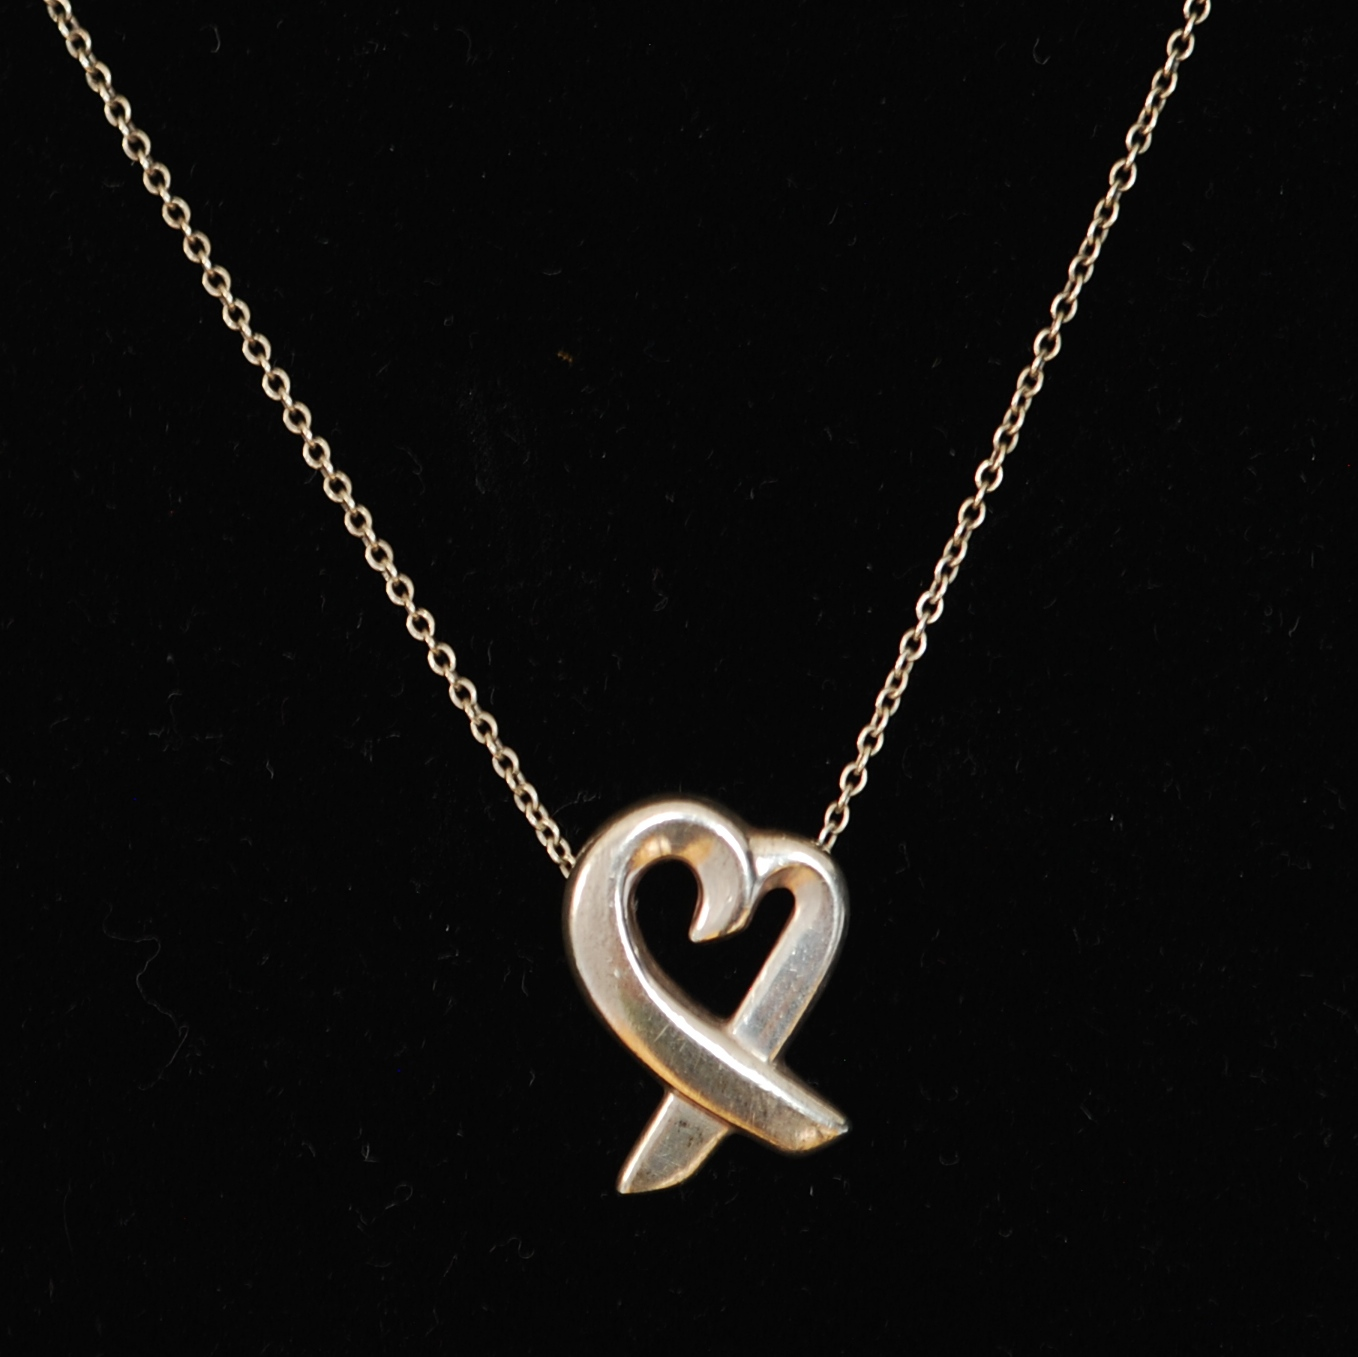 c48468c4f Tiffany & Co. Sterling Paloma Picasso Loving Heart Necklace – 925 & Signed